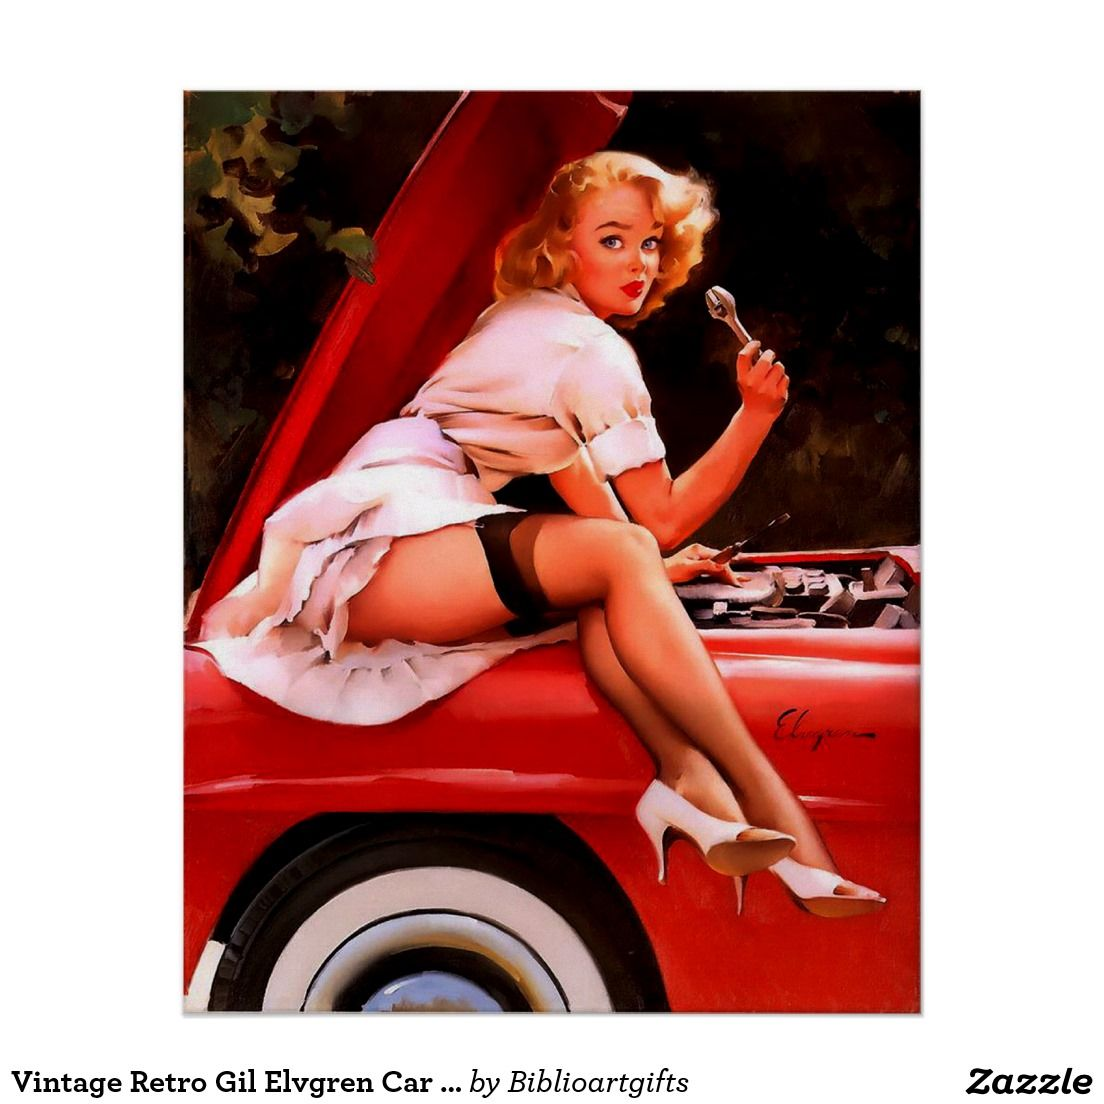 3d05a17a8e1 Vintage Retro Gil Elvgren Car Mechanic Pinup Girl Poster 50% Off All  Posters and Wrapped Canvas   15% Off Everything Else! Use Code   ZAZZARTSTORE Ends ...